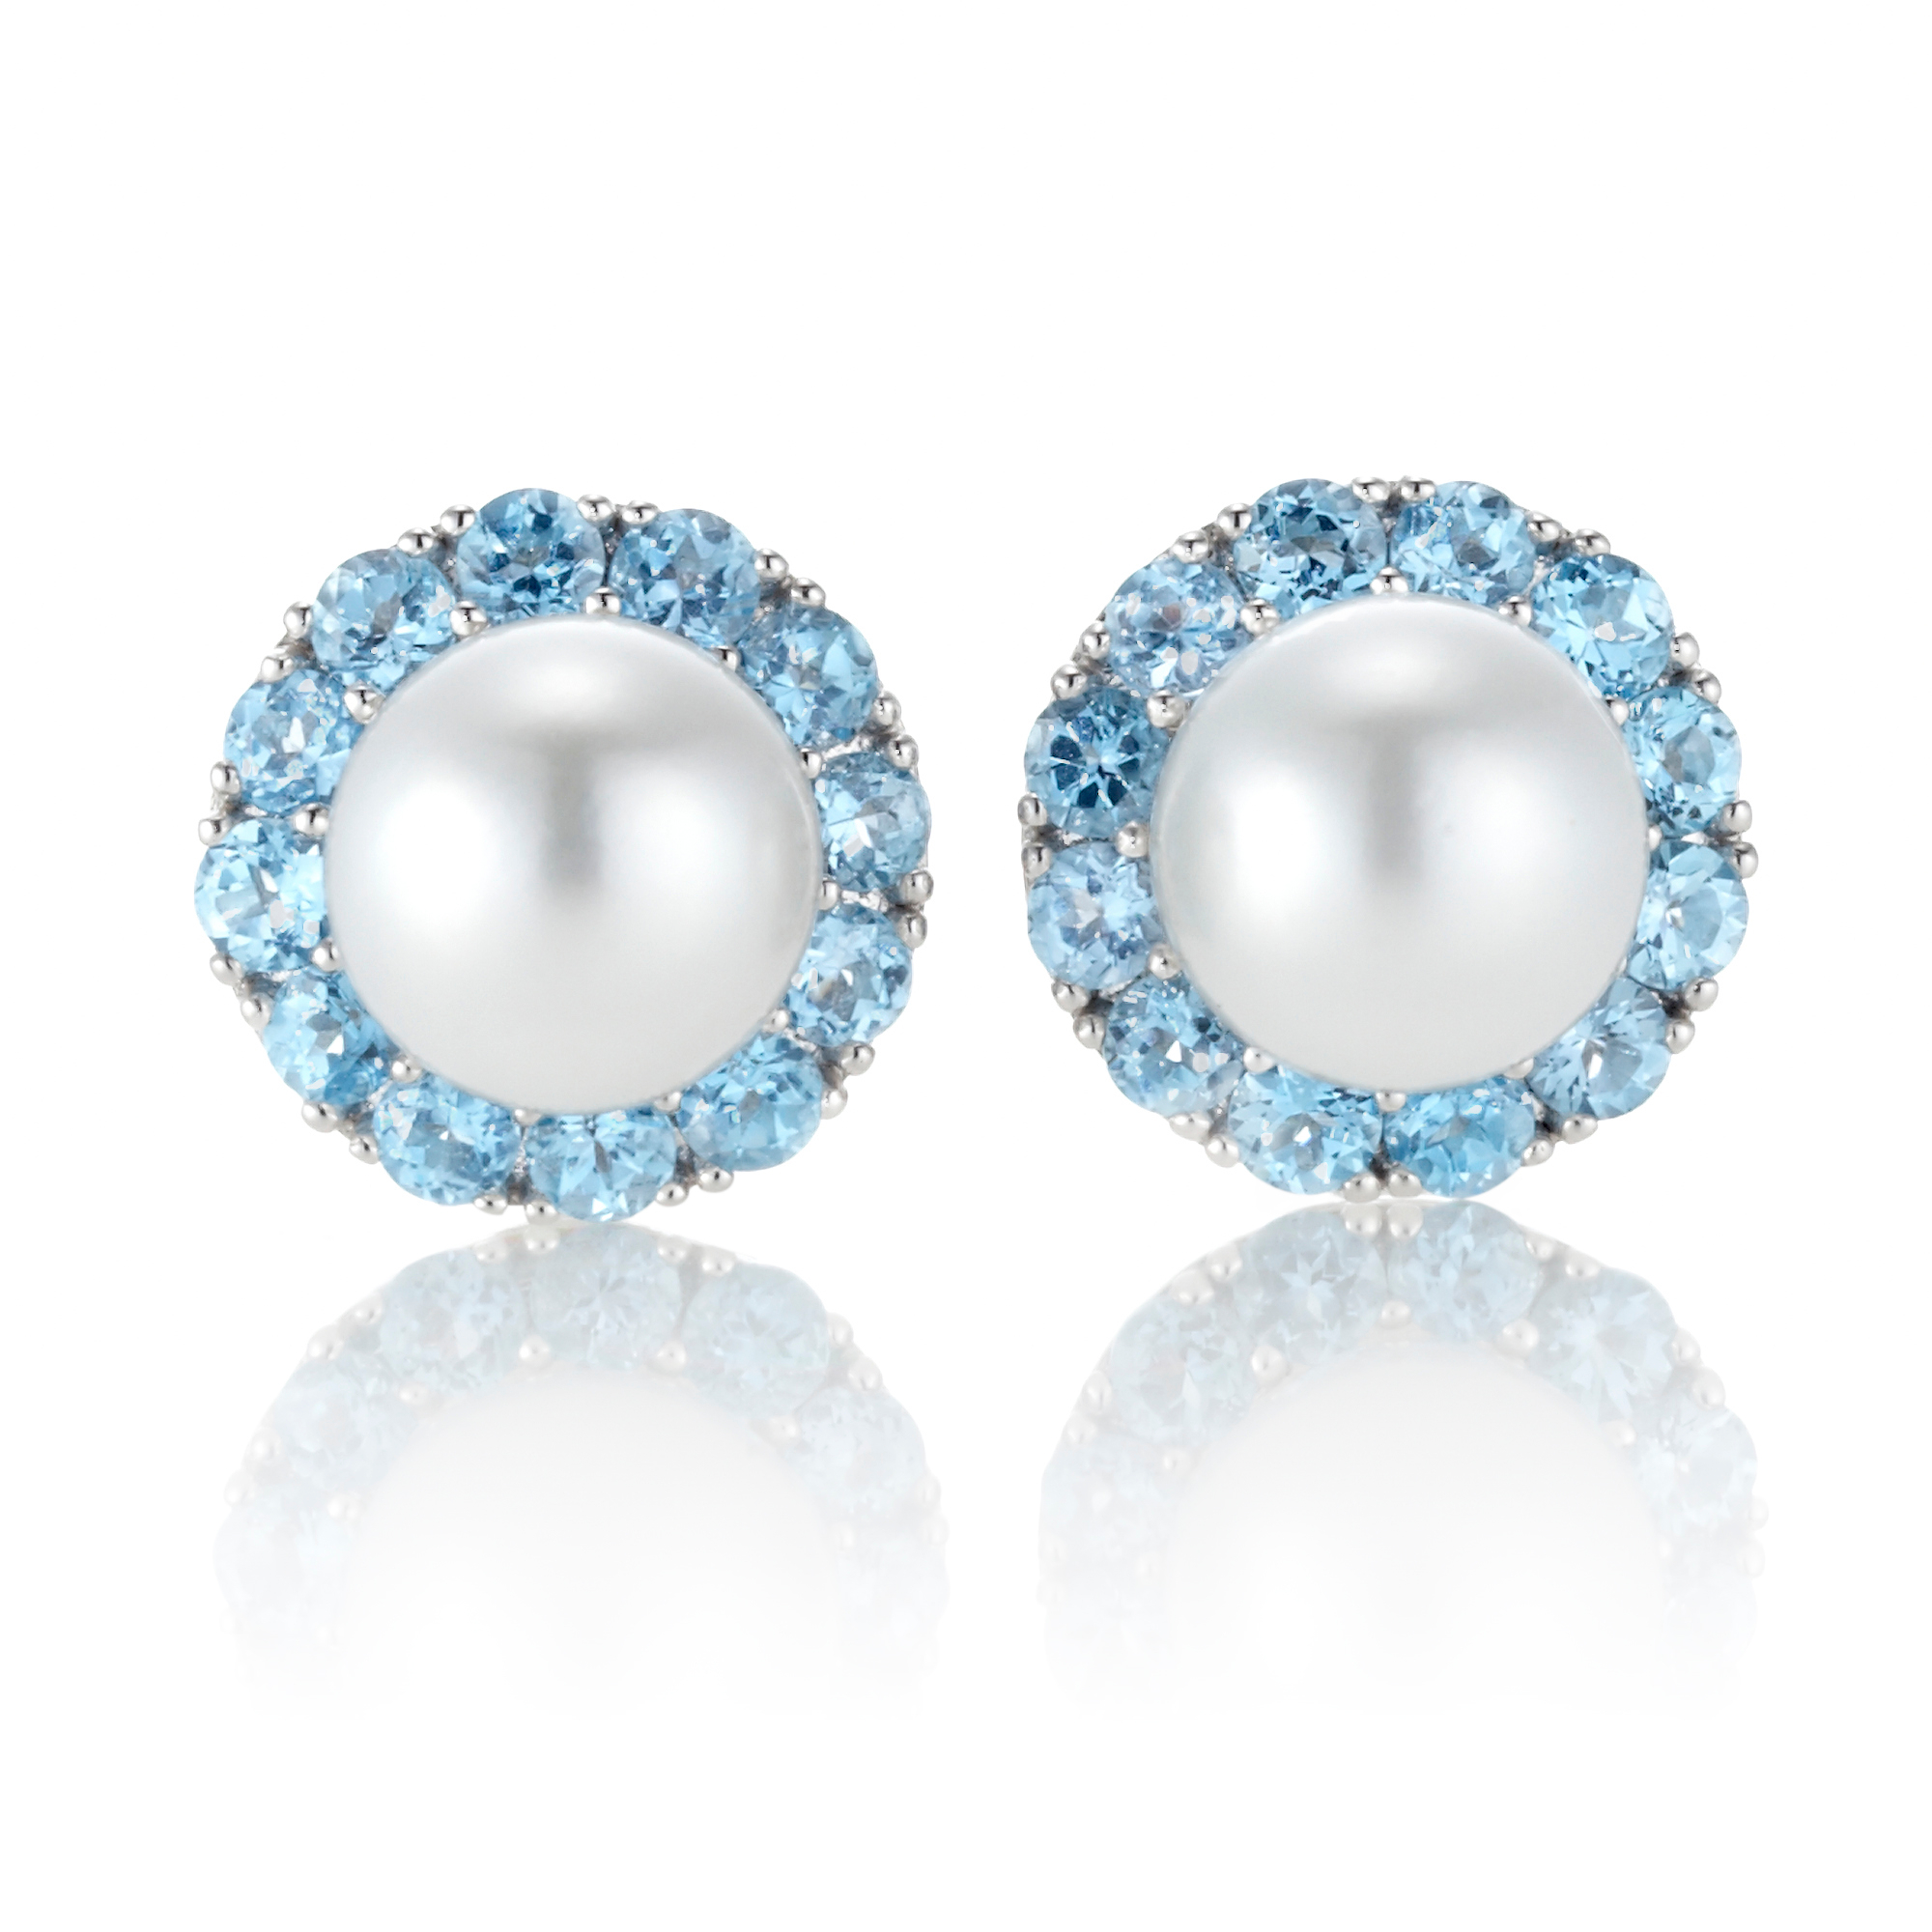 Gump's Blue Topaz & Pearl Earrings